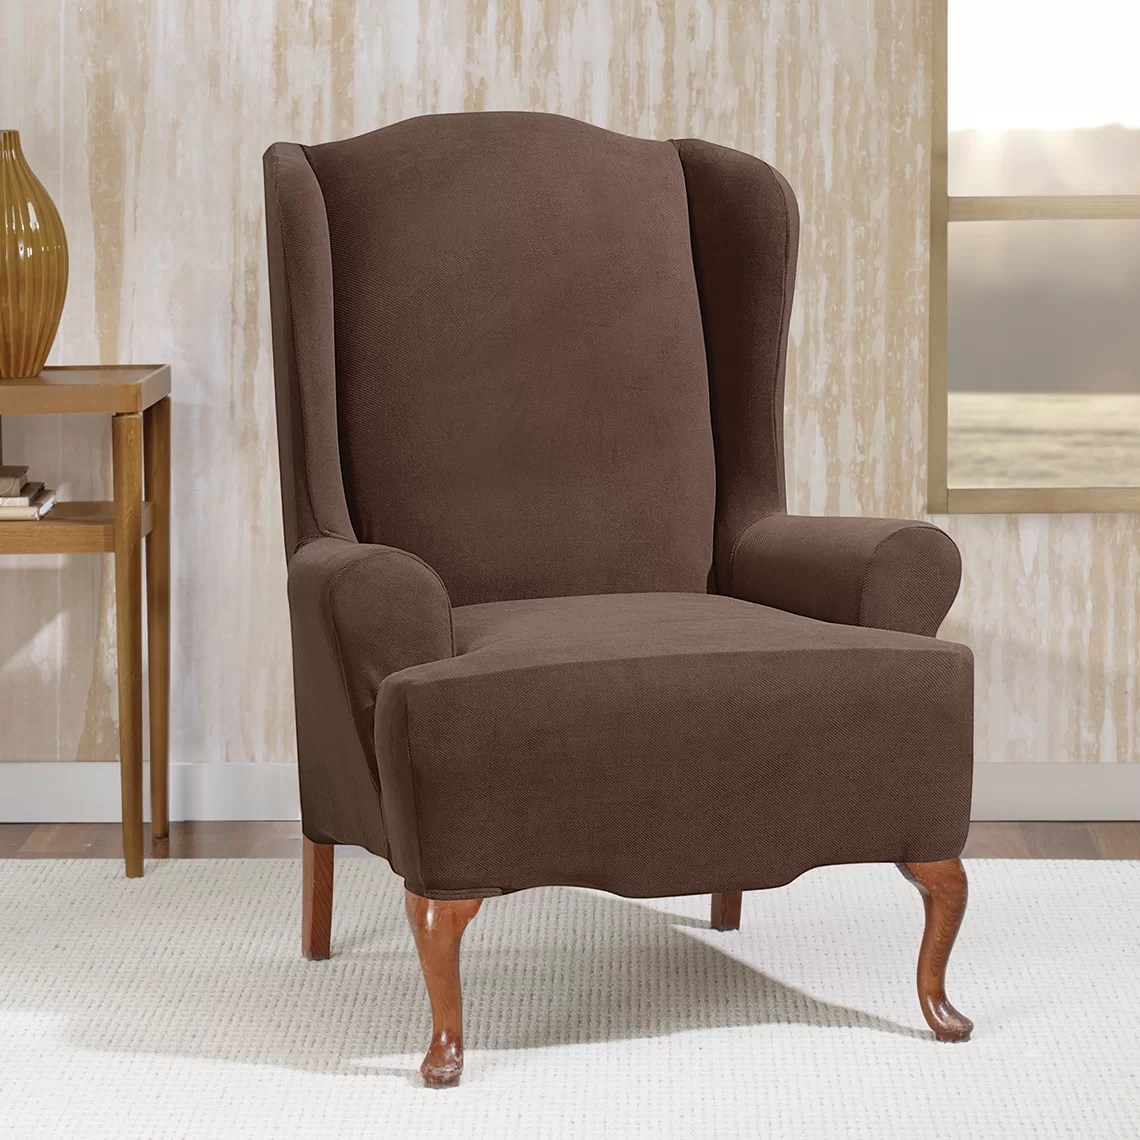 stretch morgan 1 piece sofa furniture cover klippan review sure fit wingchair t cushion skirted